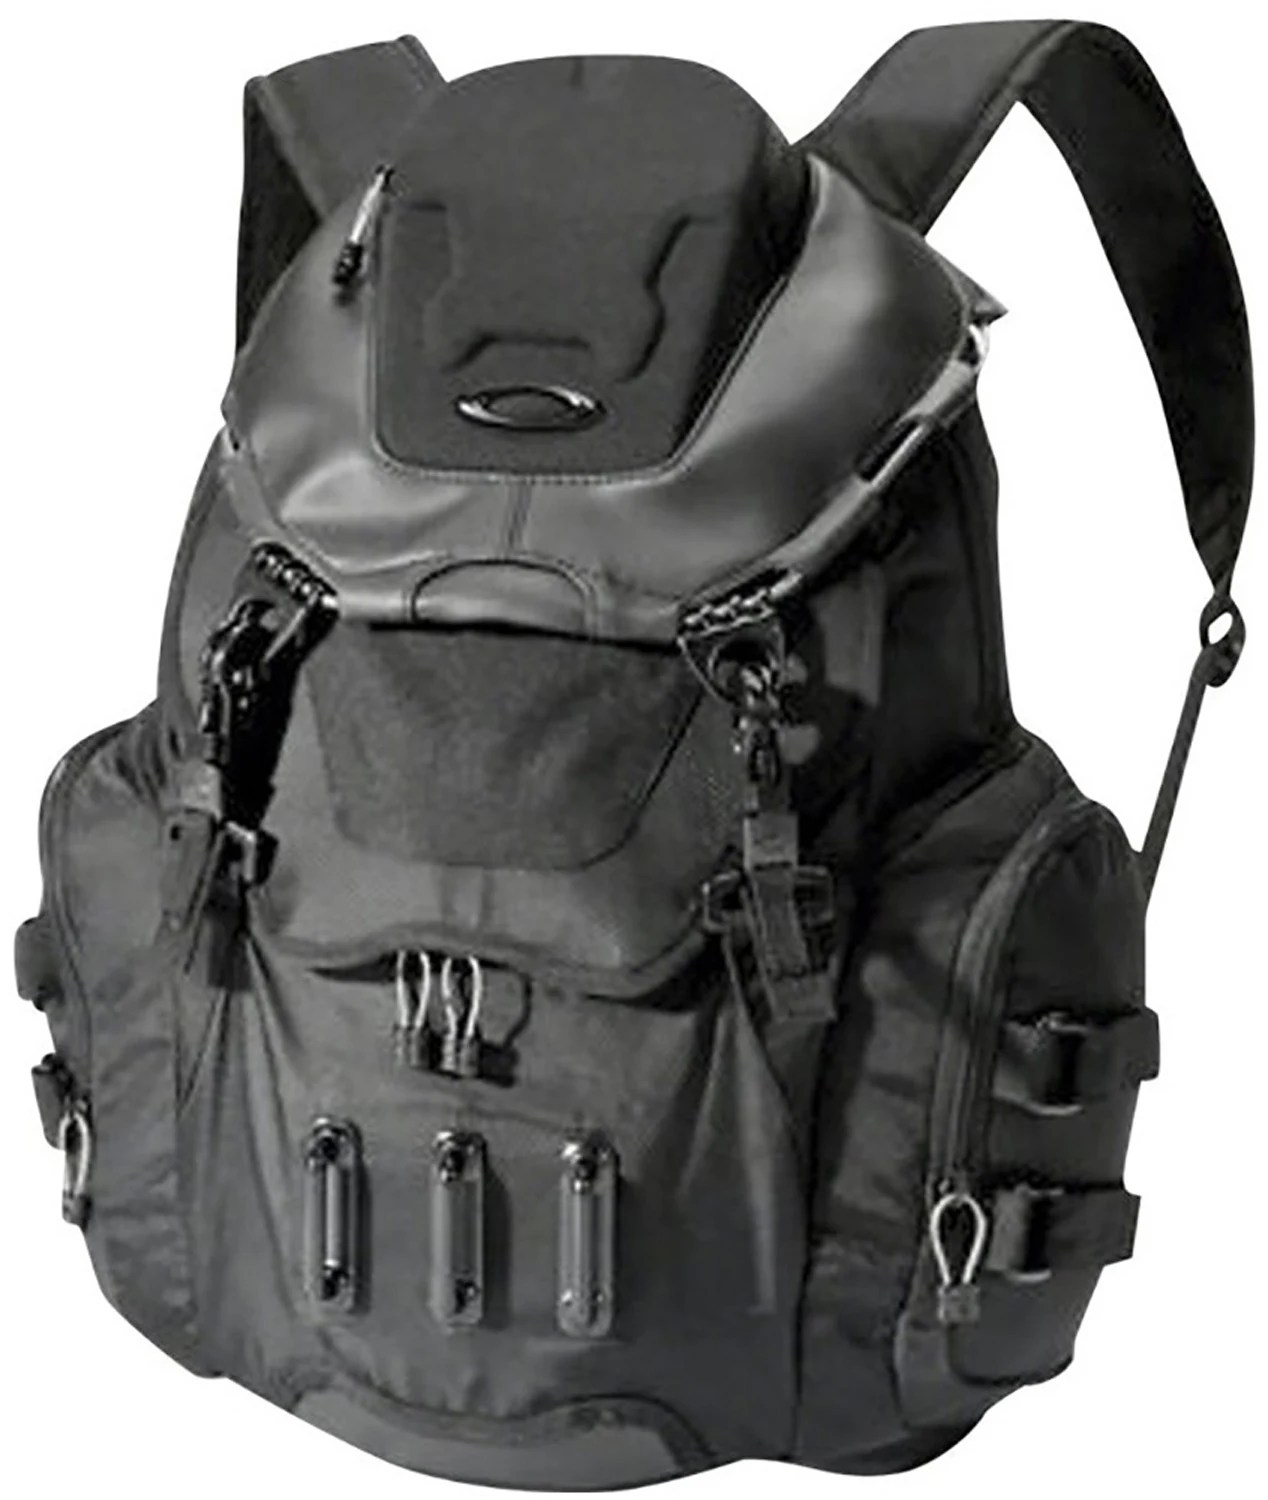 oakley kitchen sink backpack review types materials bathroom 2019